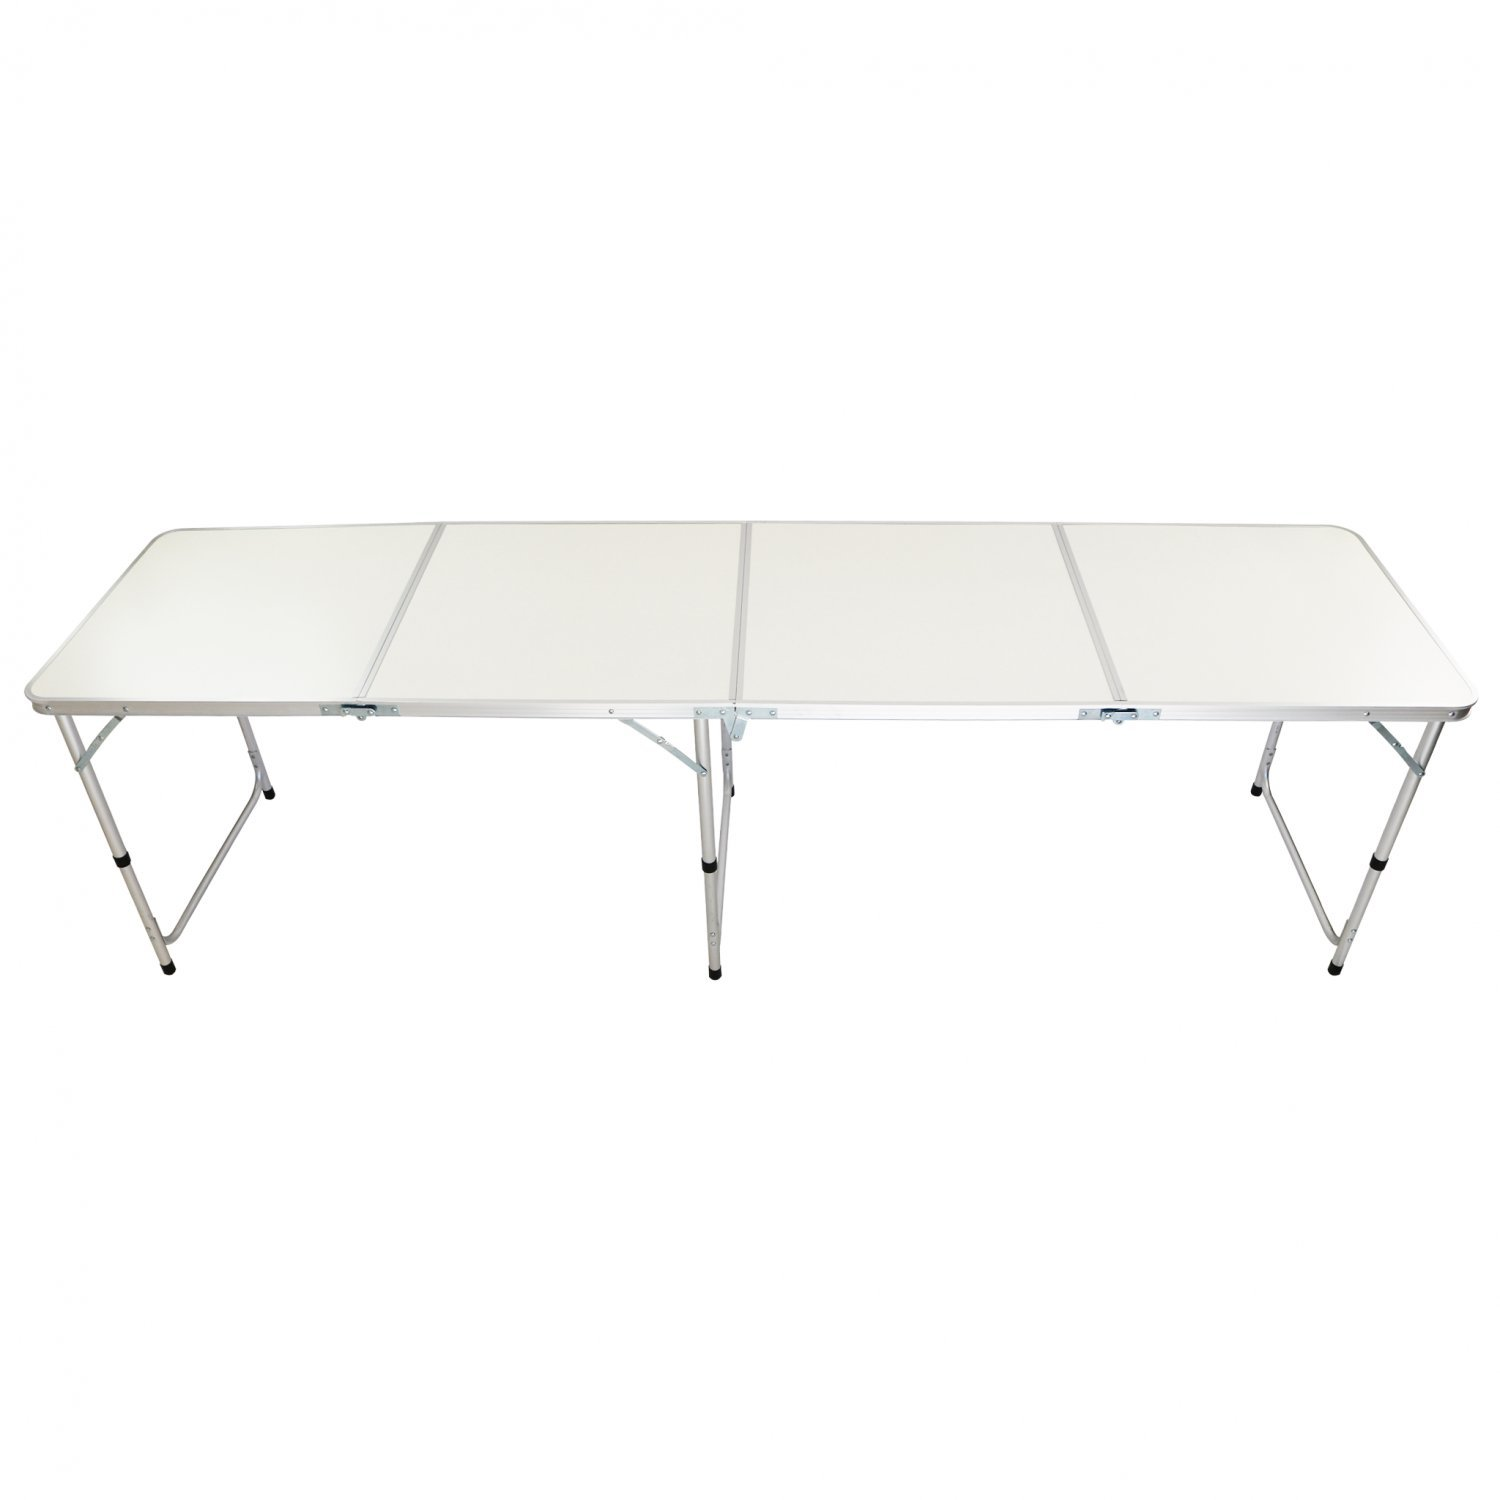 1.8M 6FT  Folding Outdoor Camping Kitchen Work Top Table with Hight Adjustment